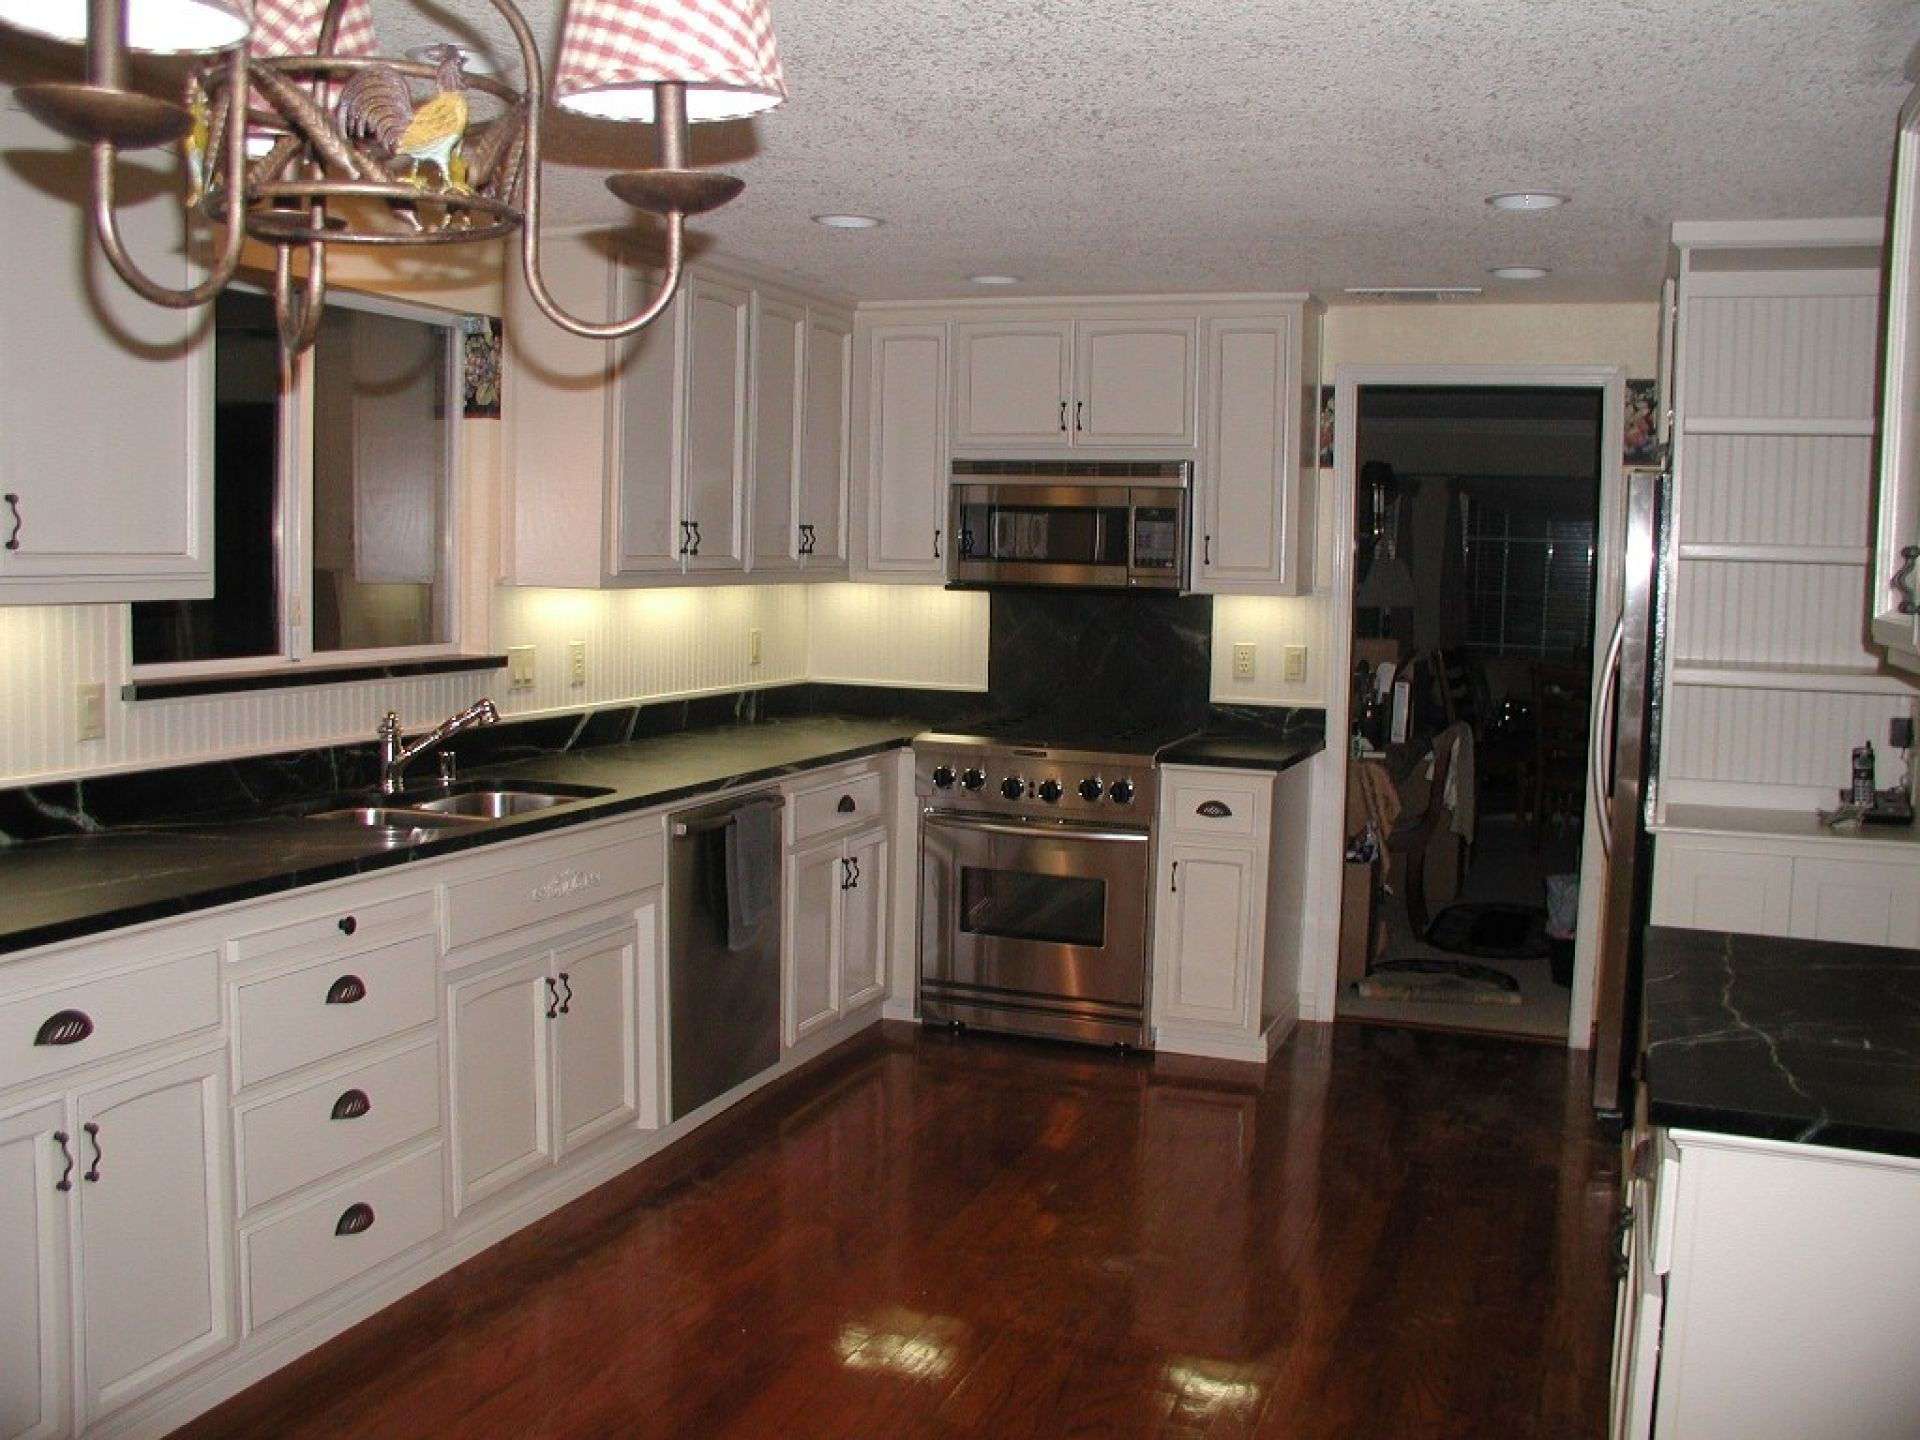 White Kitchen Cabinets With Dark Hardwood Floors Dark Hardwood Kitchen Floor Feat White Cabinets And Black